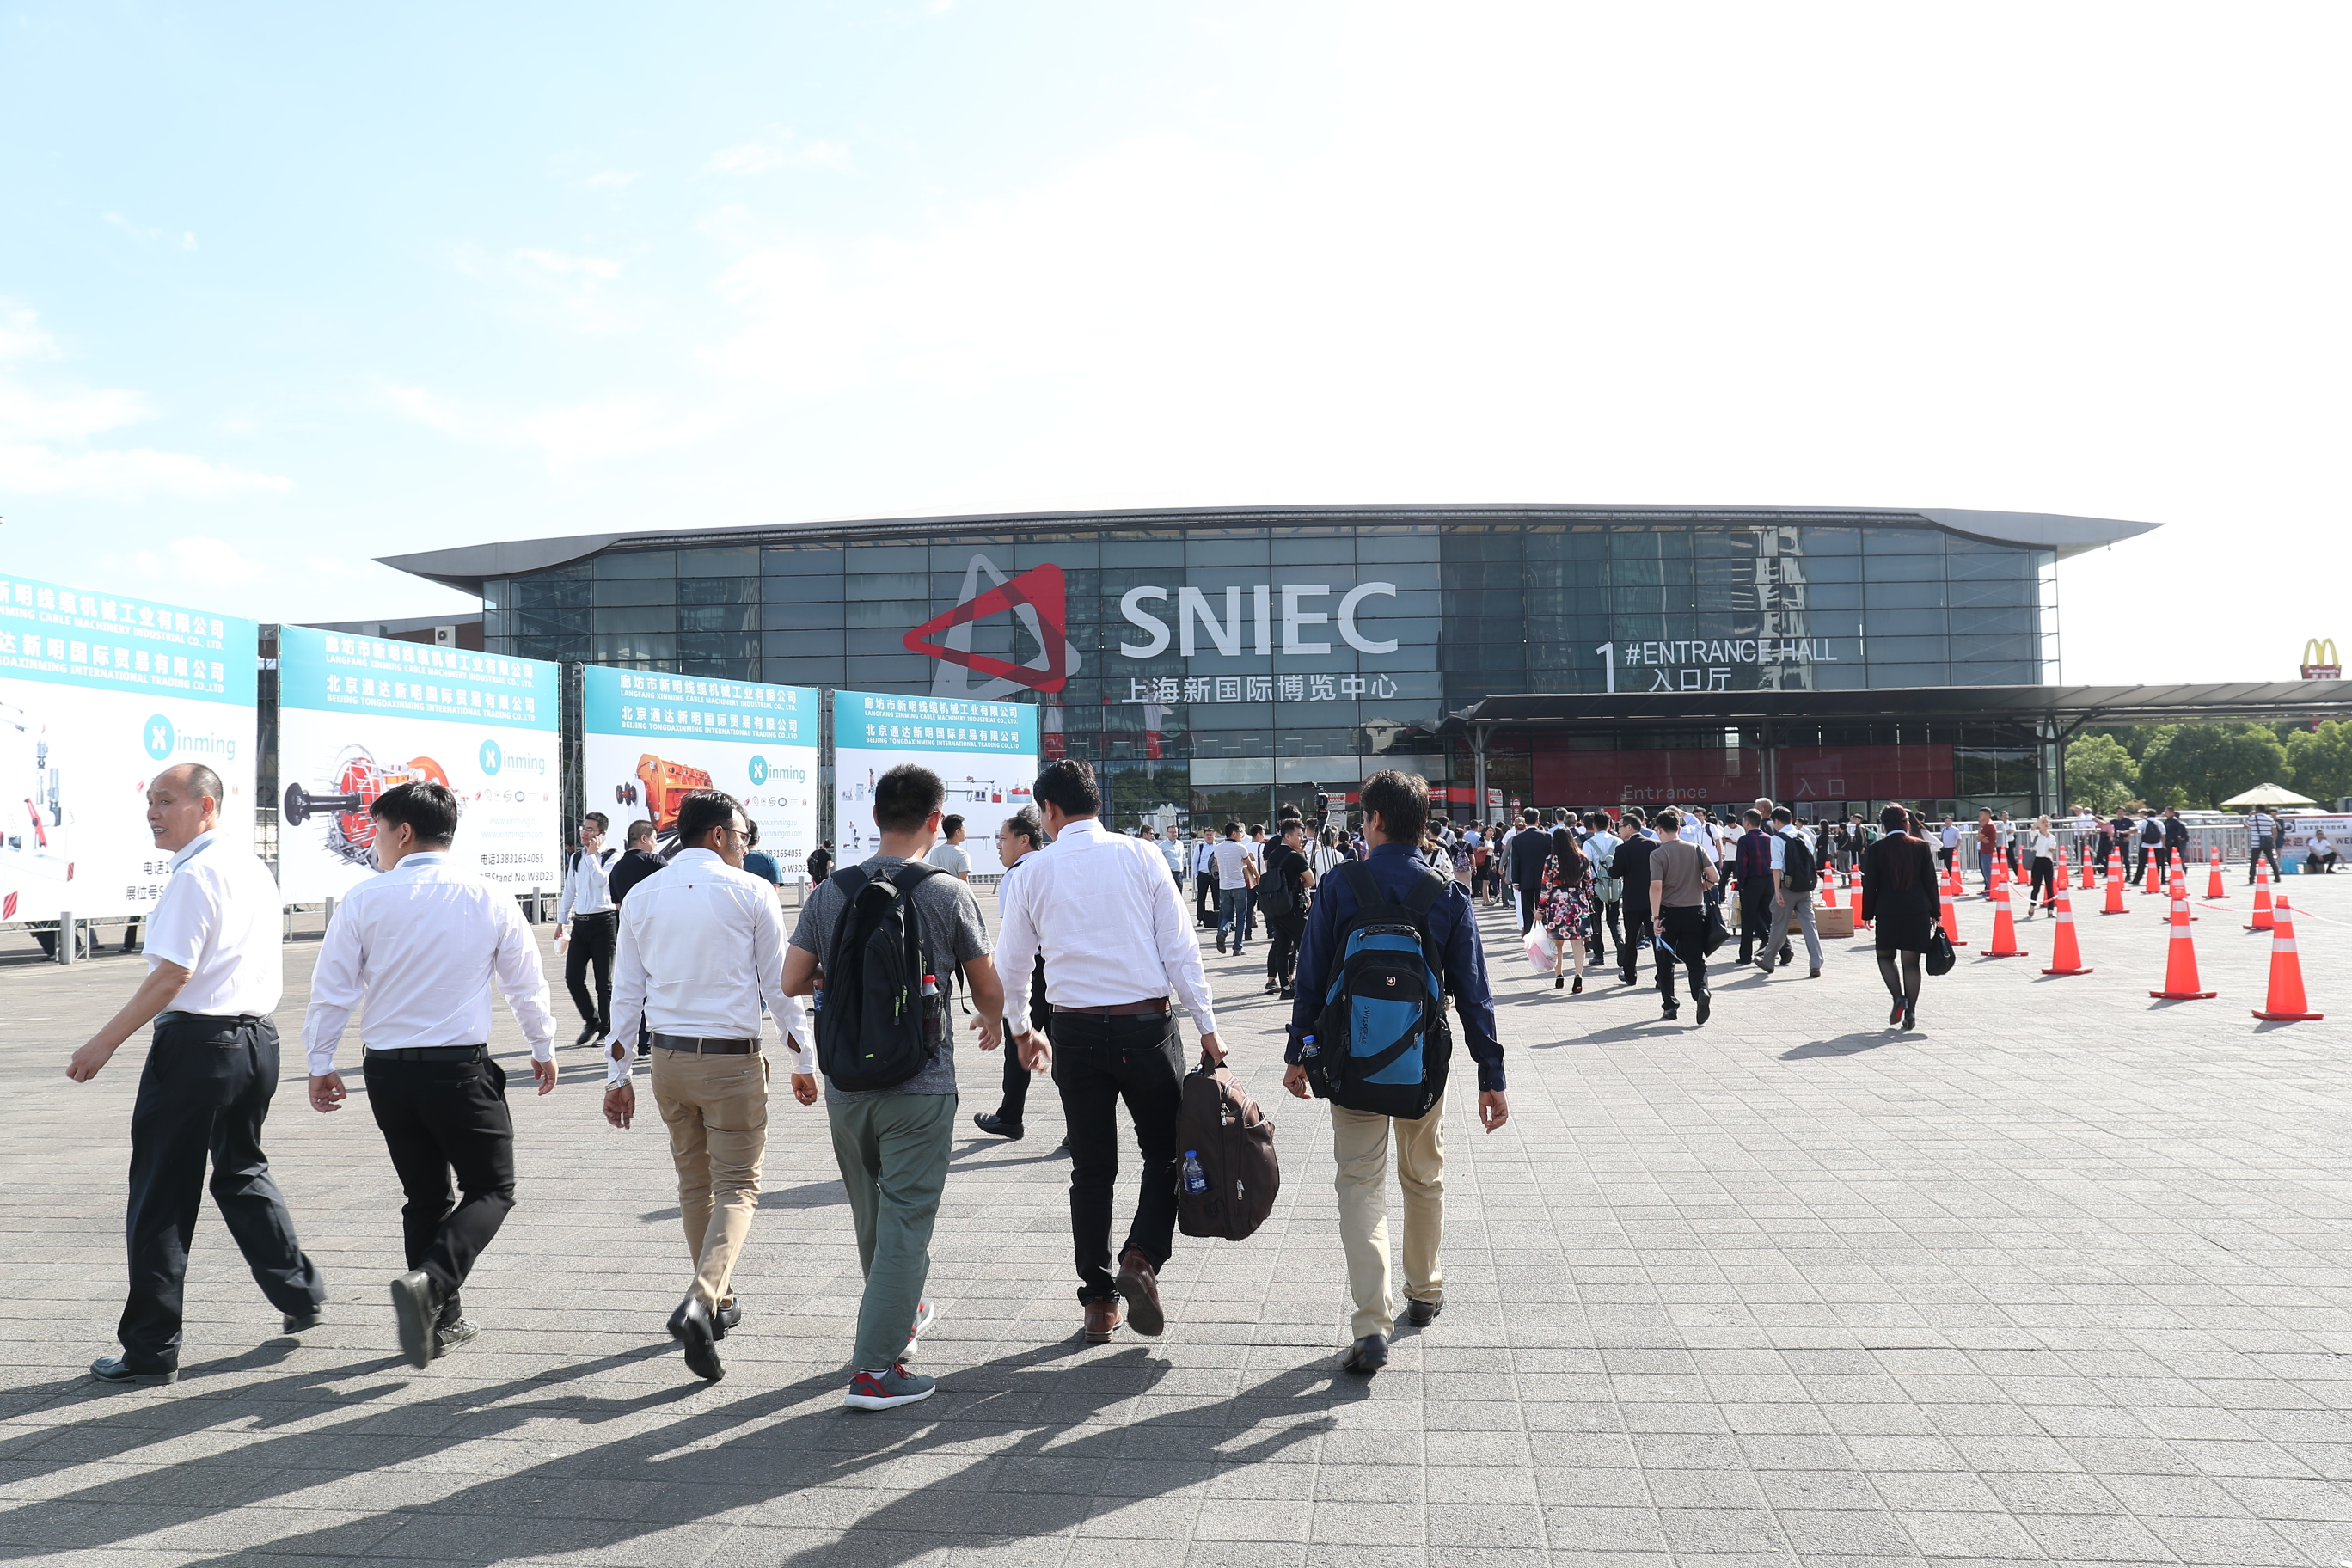 The Key to the Global Economic Recovery: A Full Restart of the Exhibition Industry